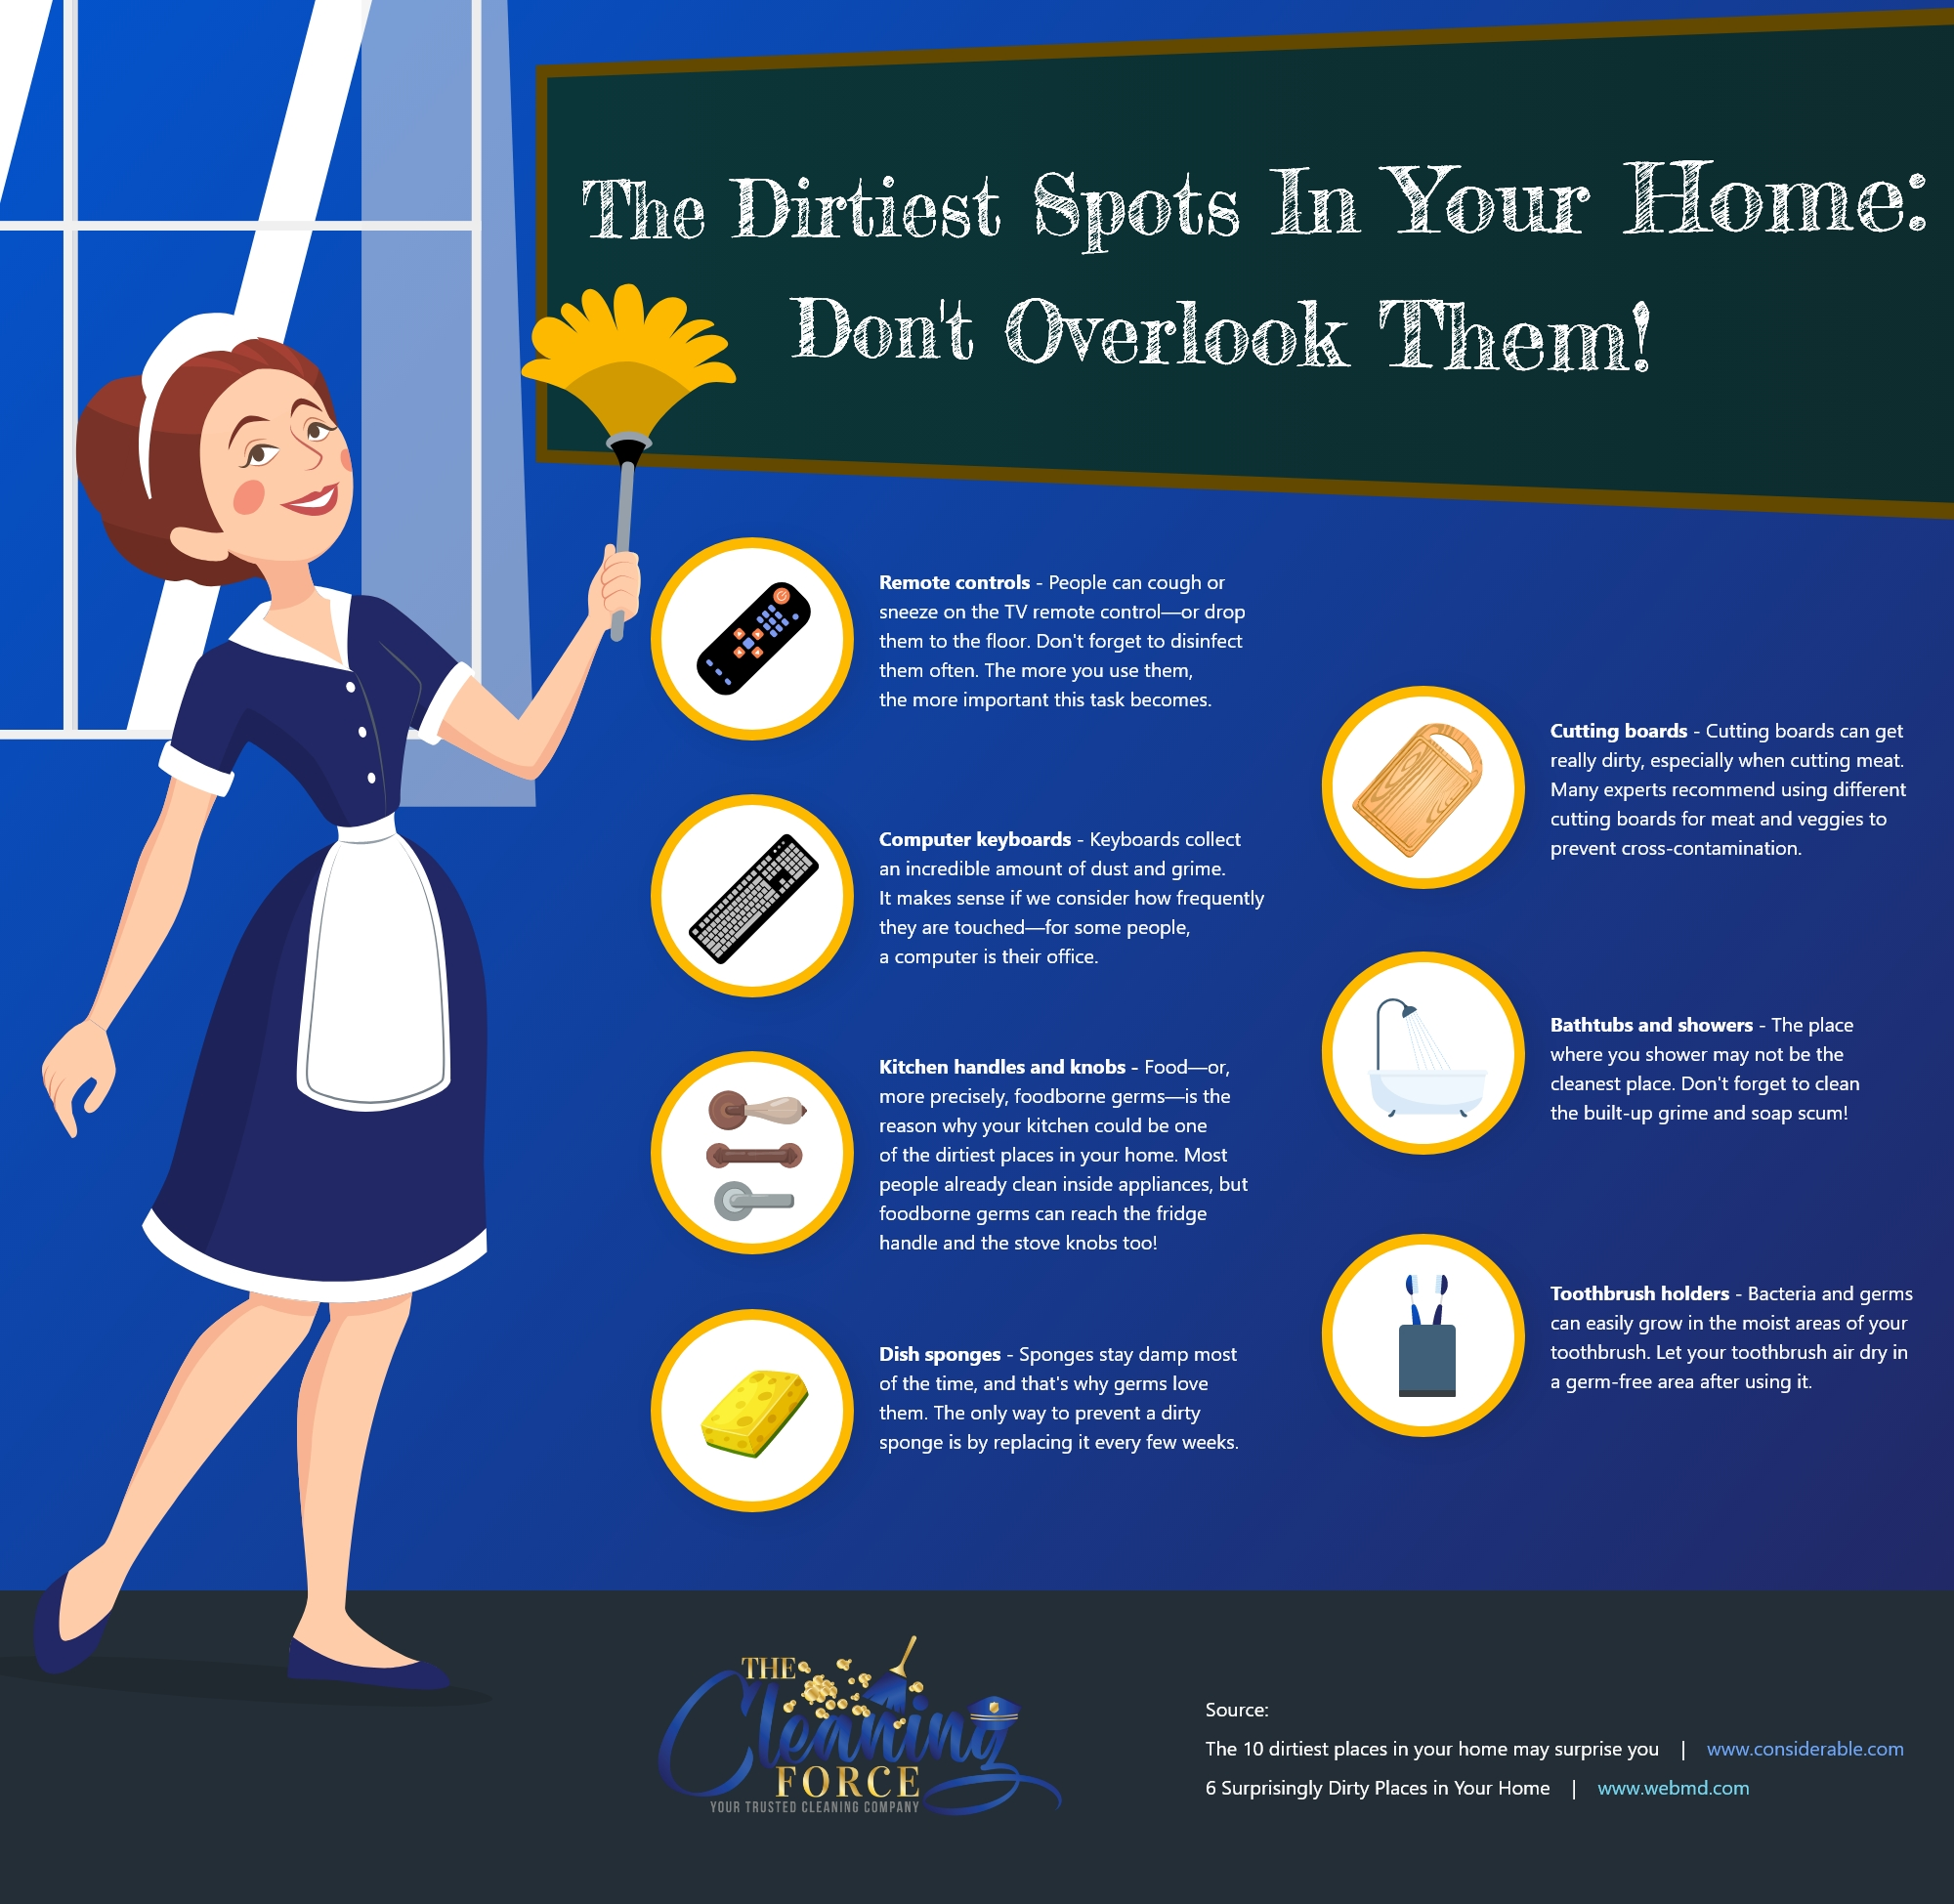 The Dirtiest Spots In Your Home: Don't Overlook Them!